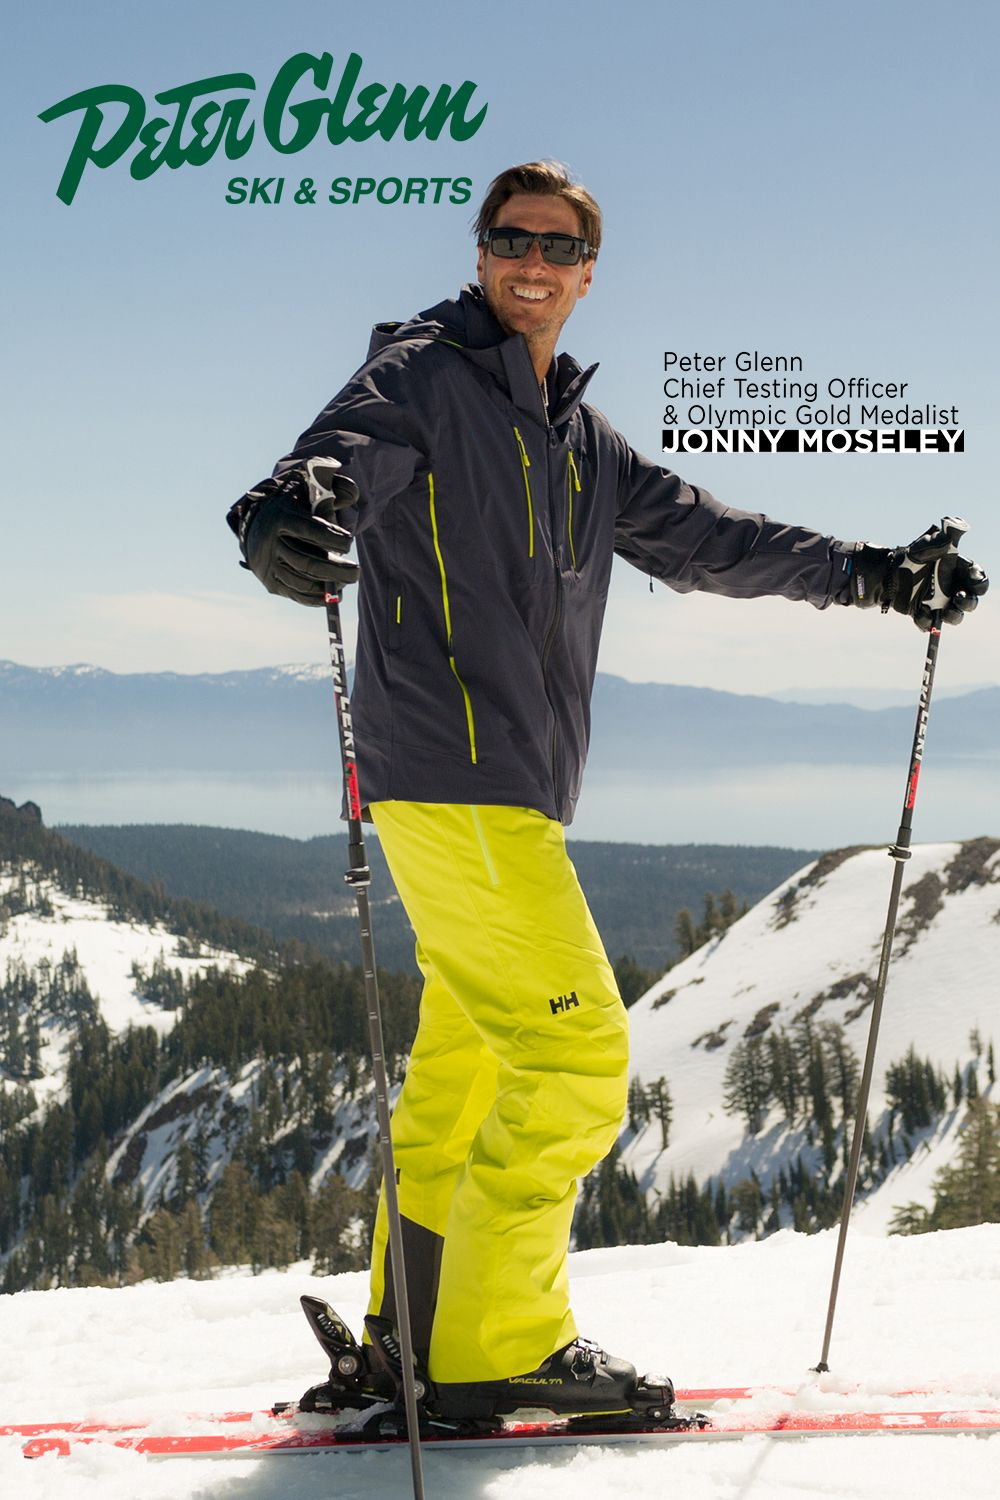 Find a huge selection of ski/snowboard gear & apparel at